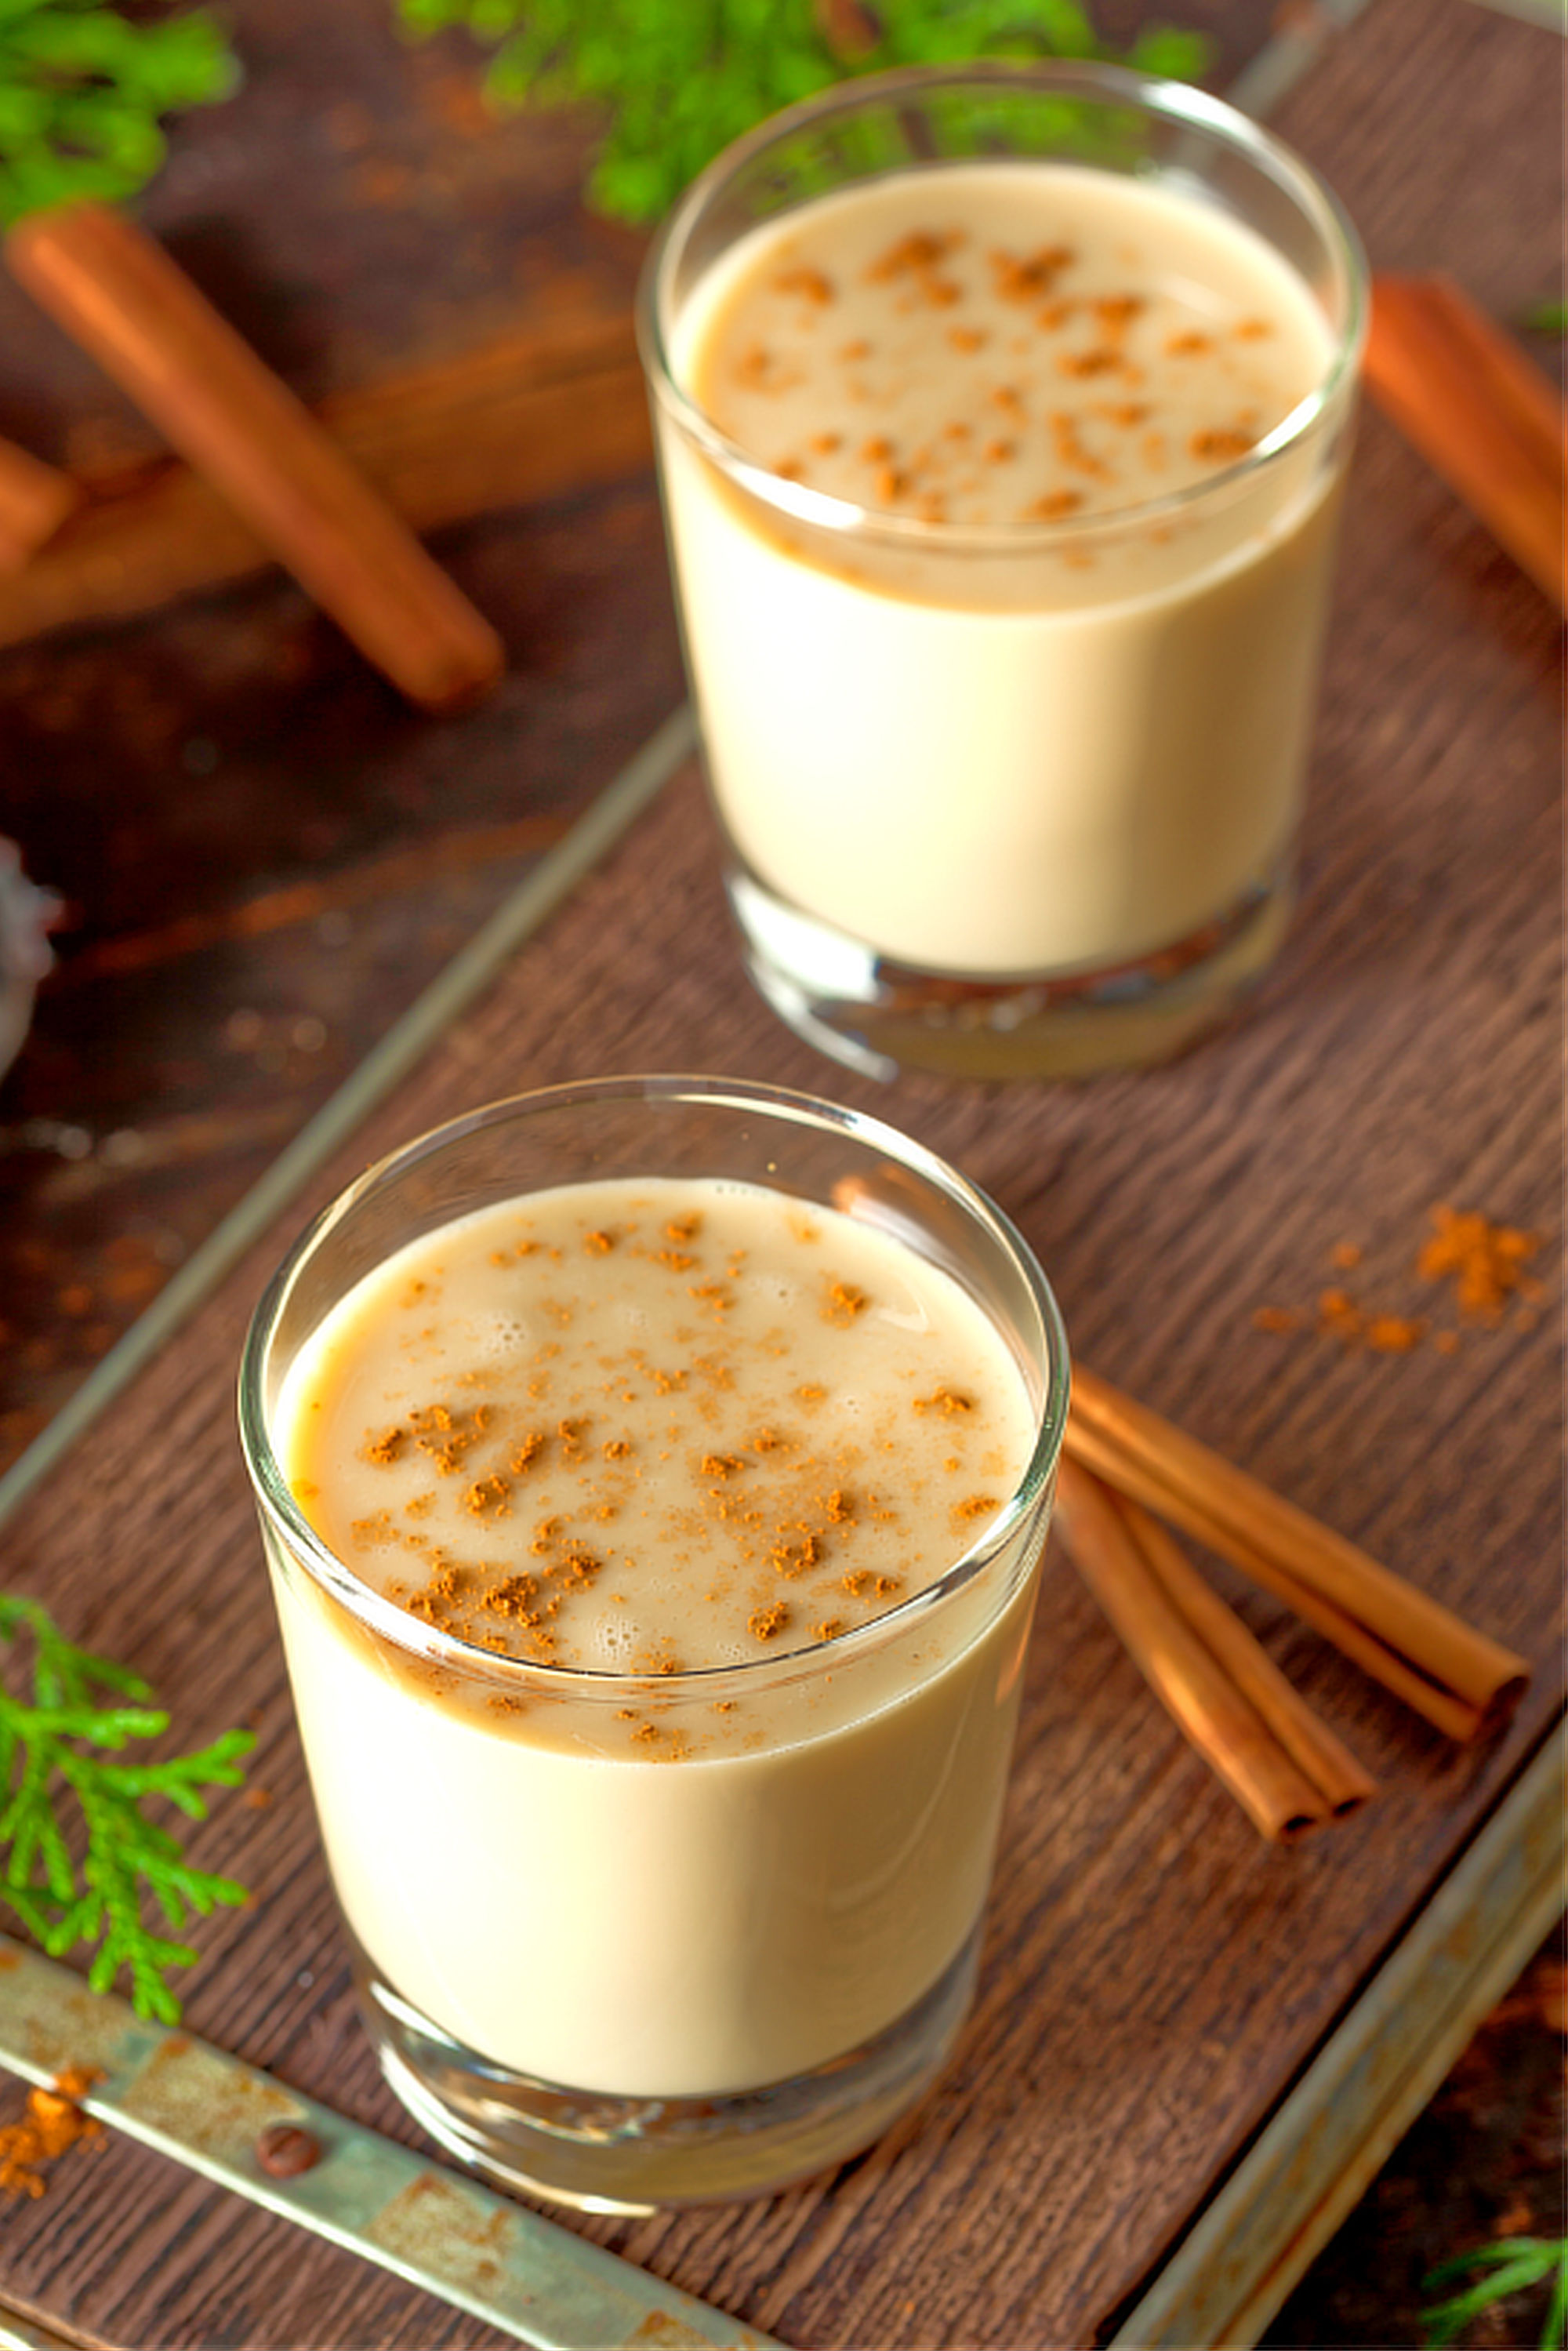 Eggnog has been around for a very long time, in both its alcohol and non-alcoholic forms. Featuring brandy, rum, lots of egg, and spices, this recipe is sure to warm you up and fill you up during the holiday season.